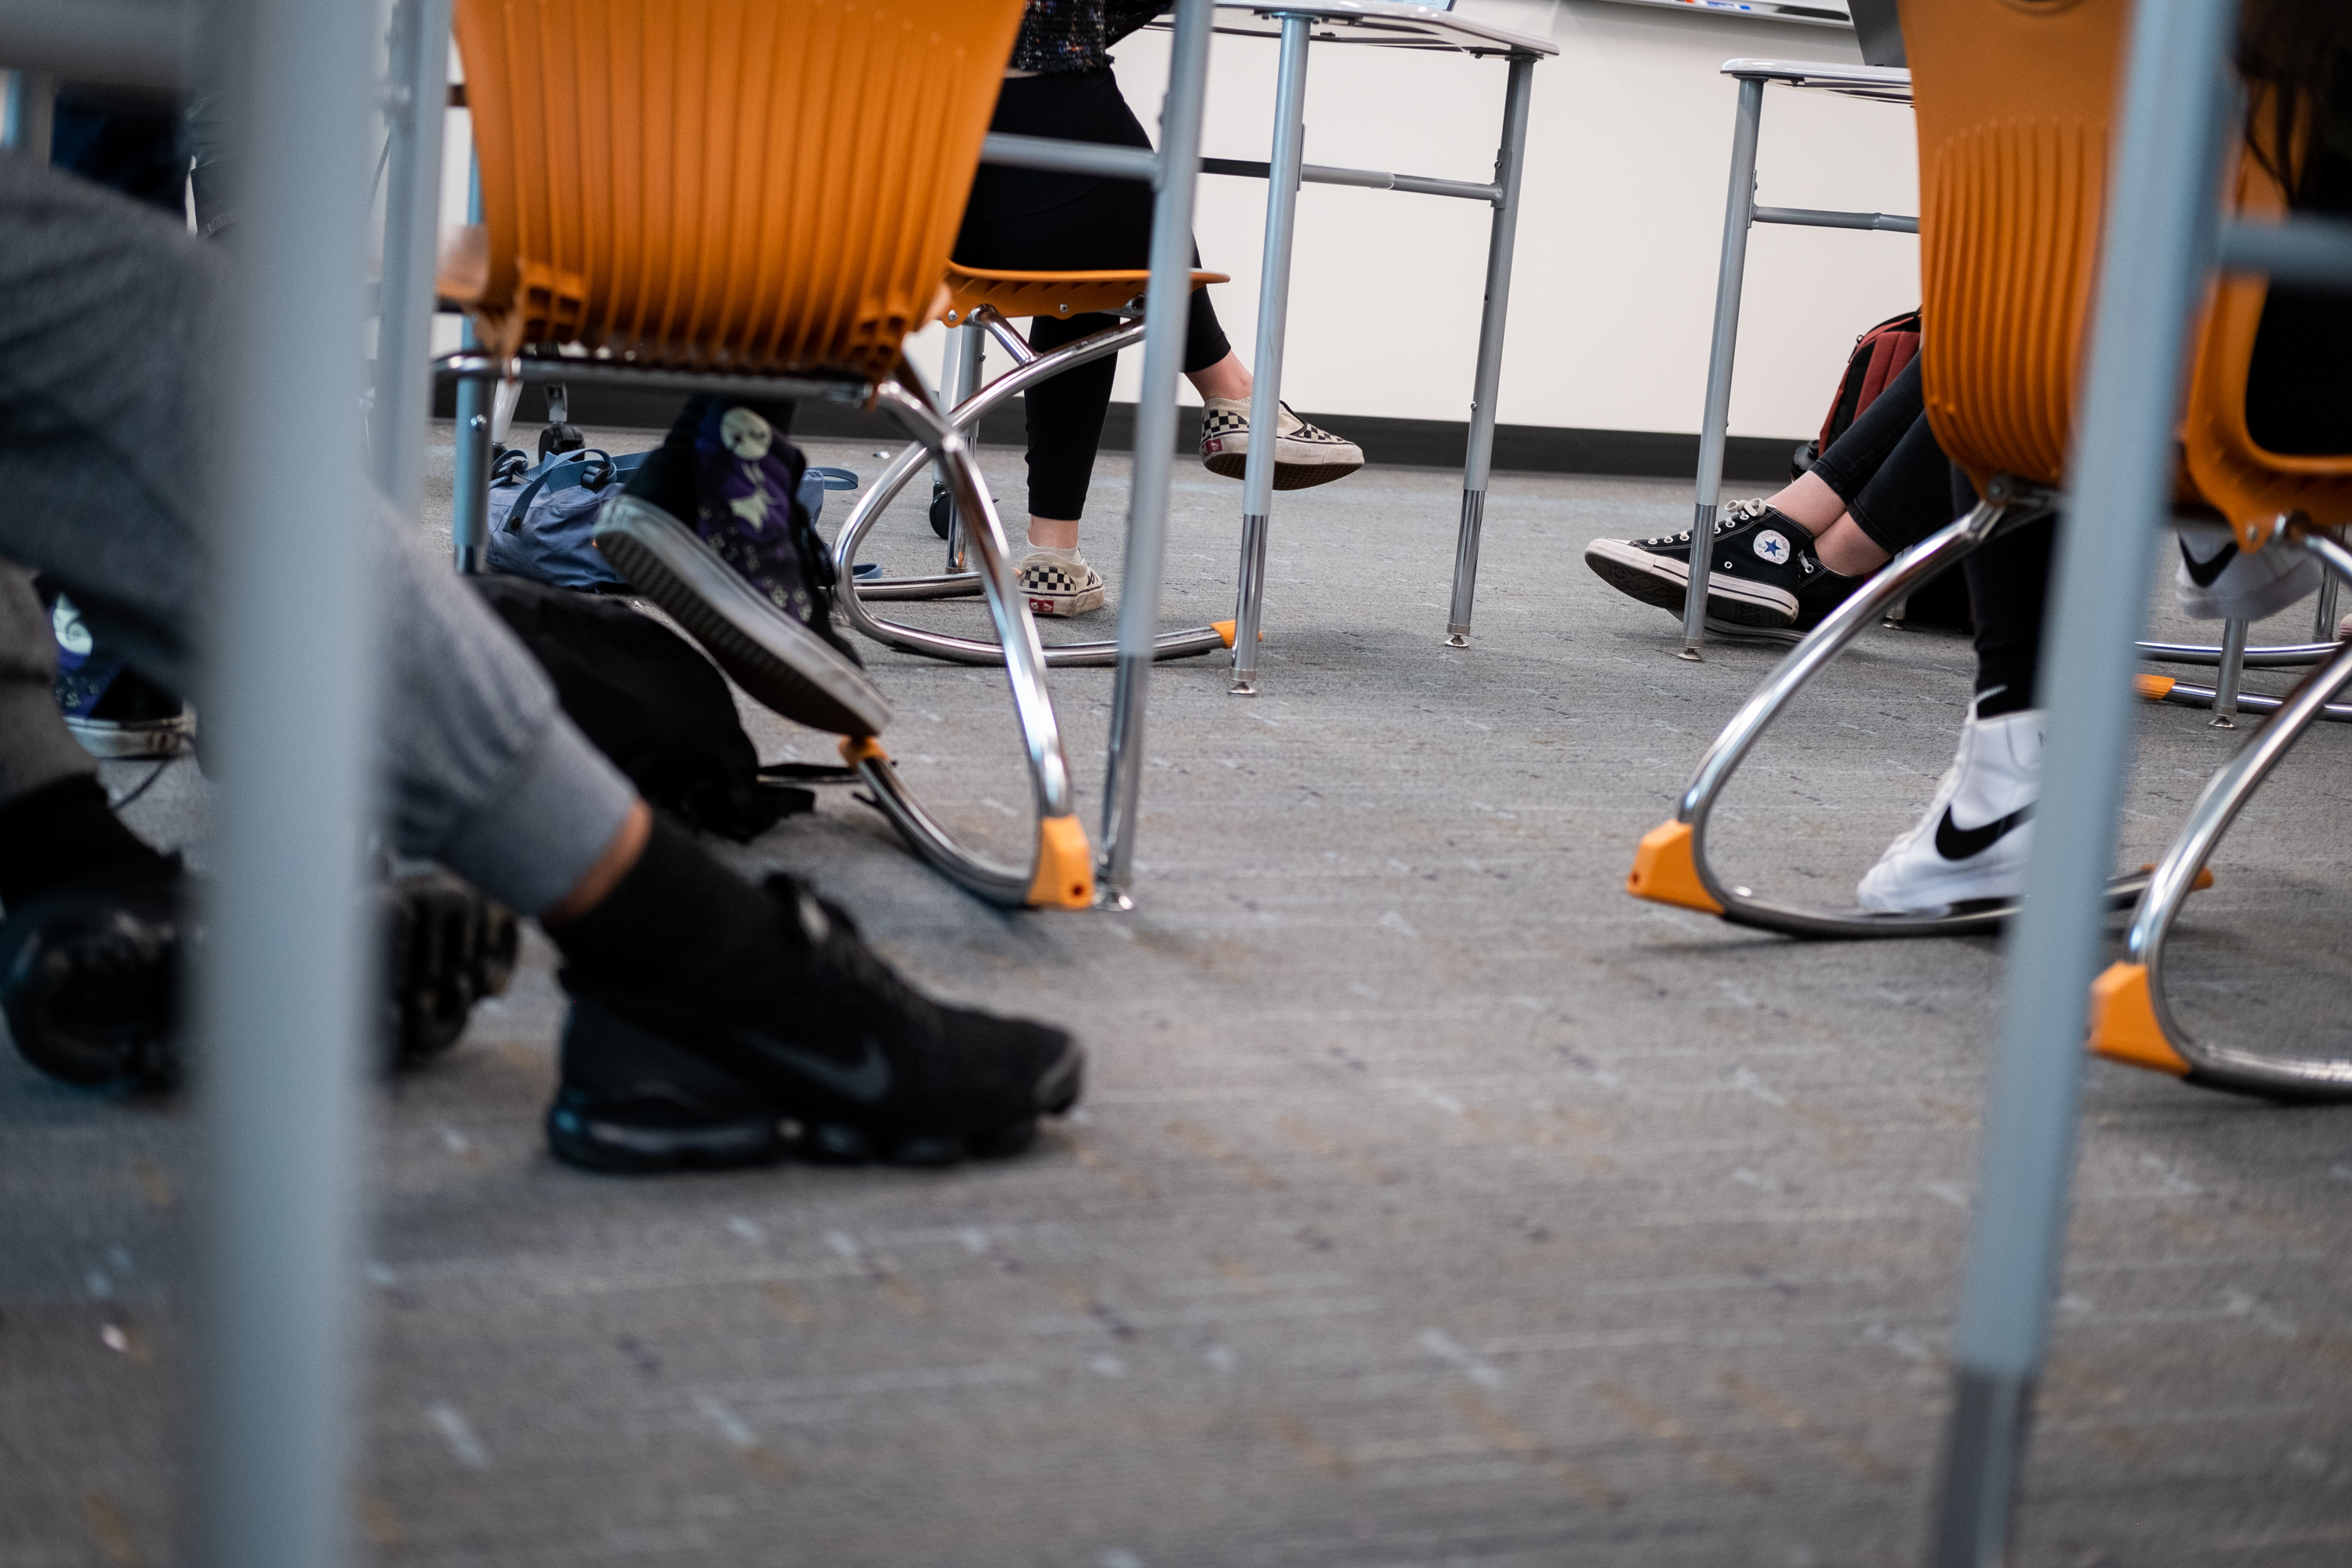 Students' feet beneath their chairs in a classroom.